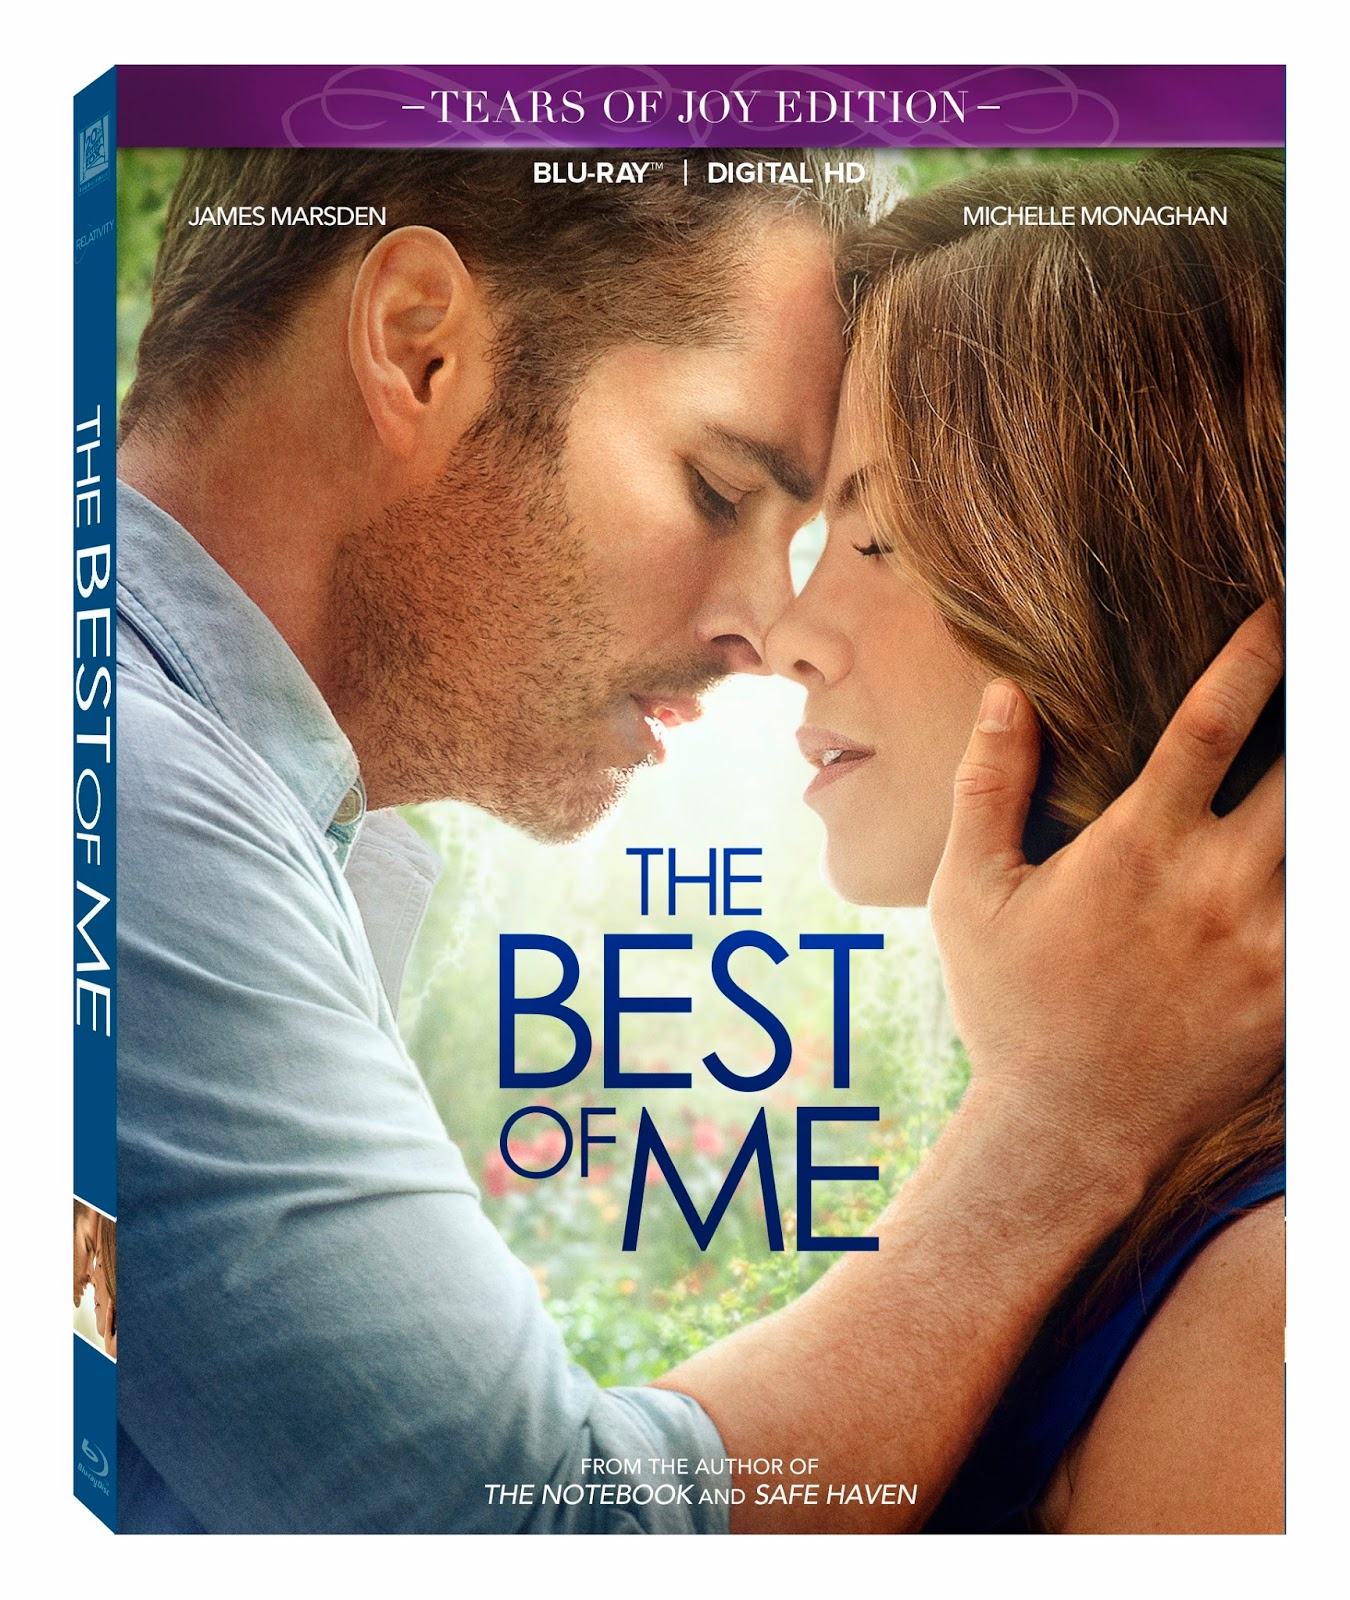 book sp l ot reviews the best of me blu ray review bestofmemovie based on the 1 new york times best seller from celebrated author nicholas sparks comes this tender r tic drama about the timeless power of love